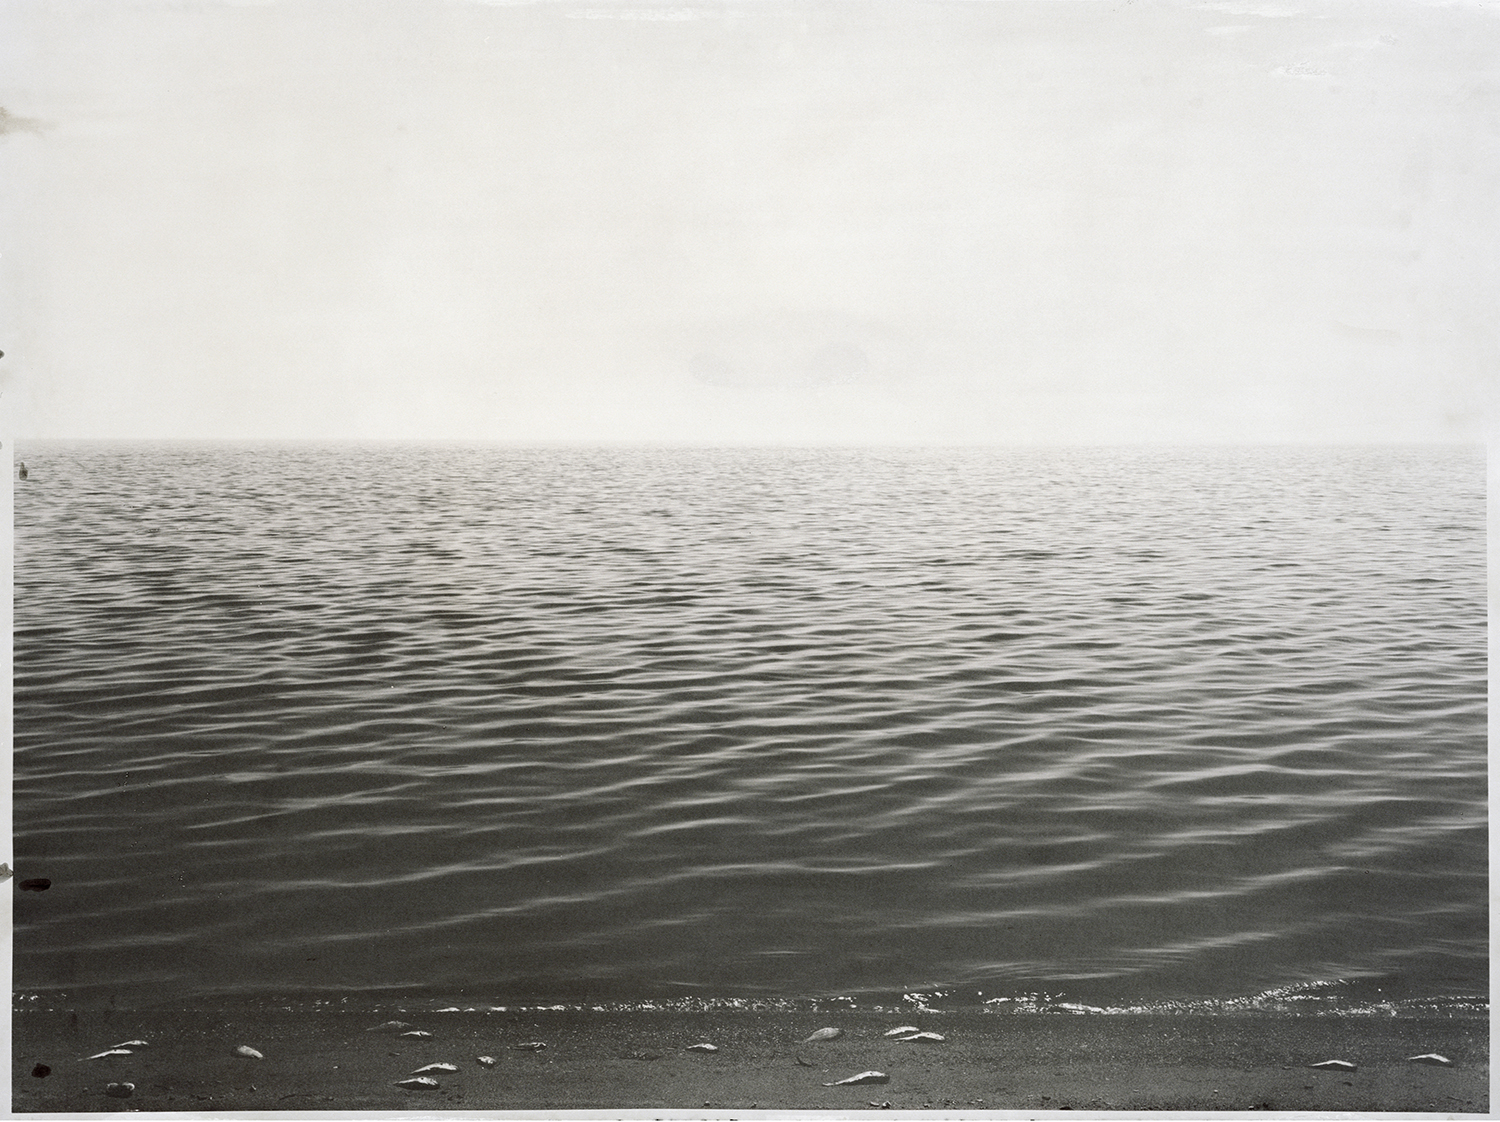 Salton Sea A1  2006  salted paper print with Salton Sea water  30 x 40 inches